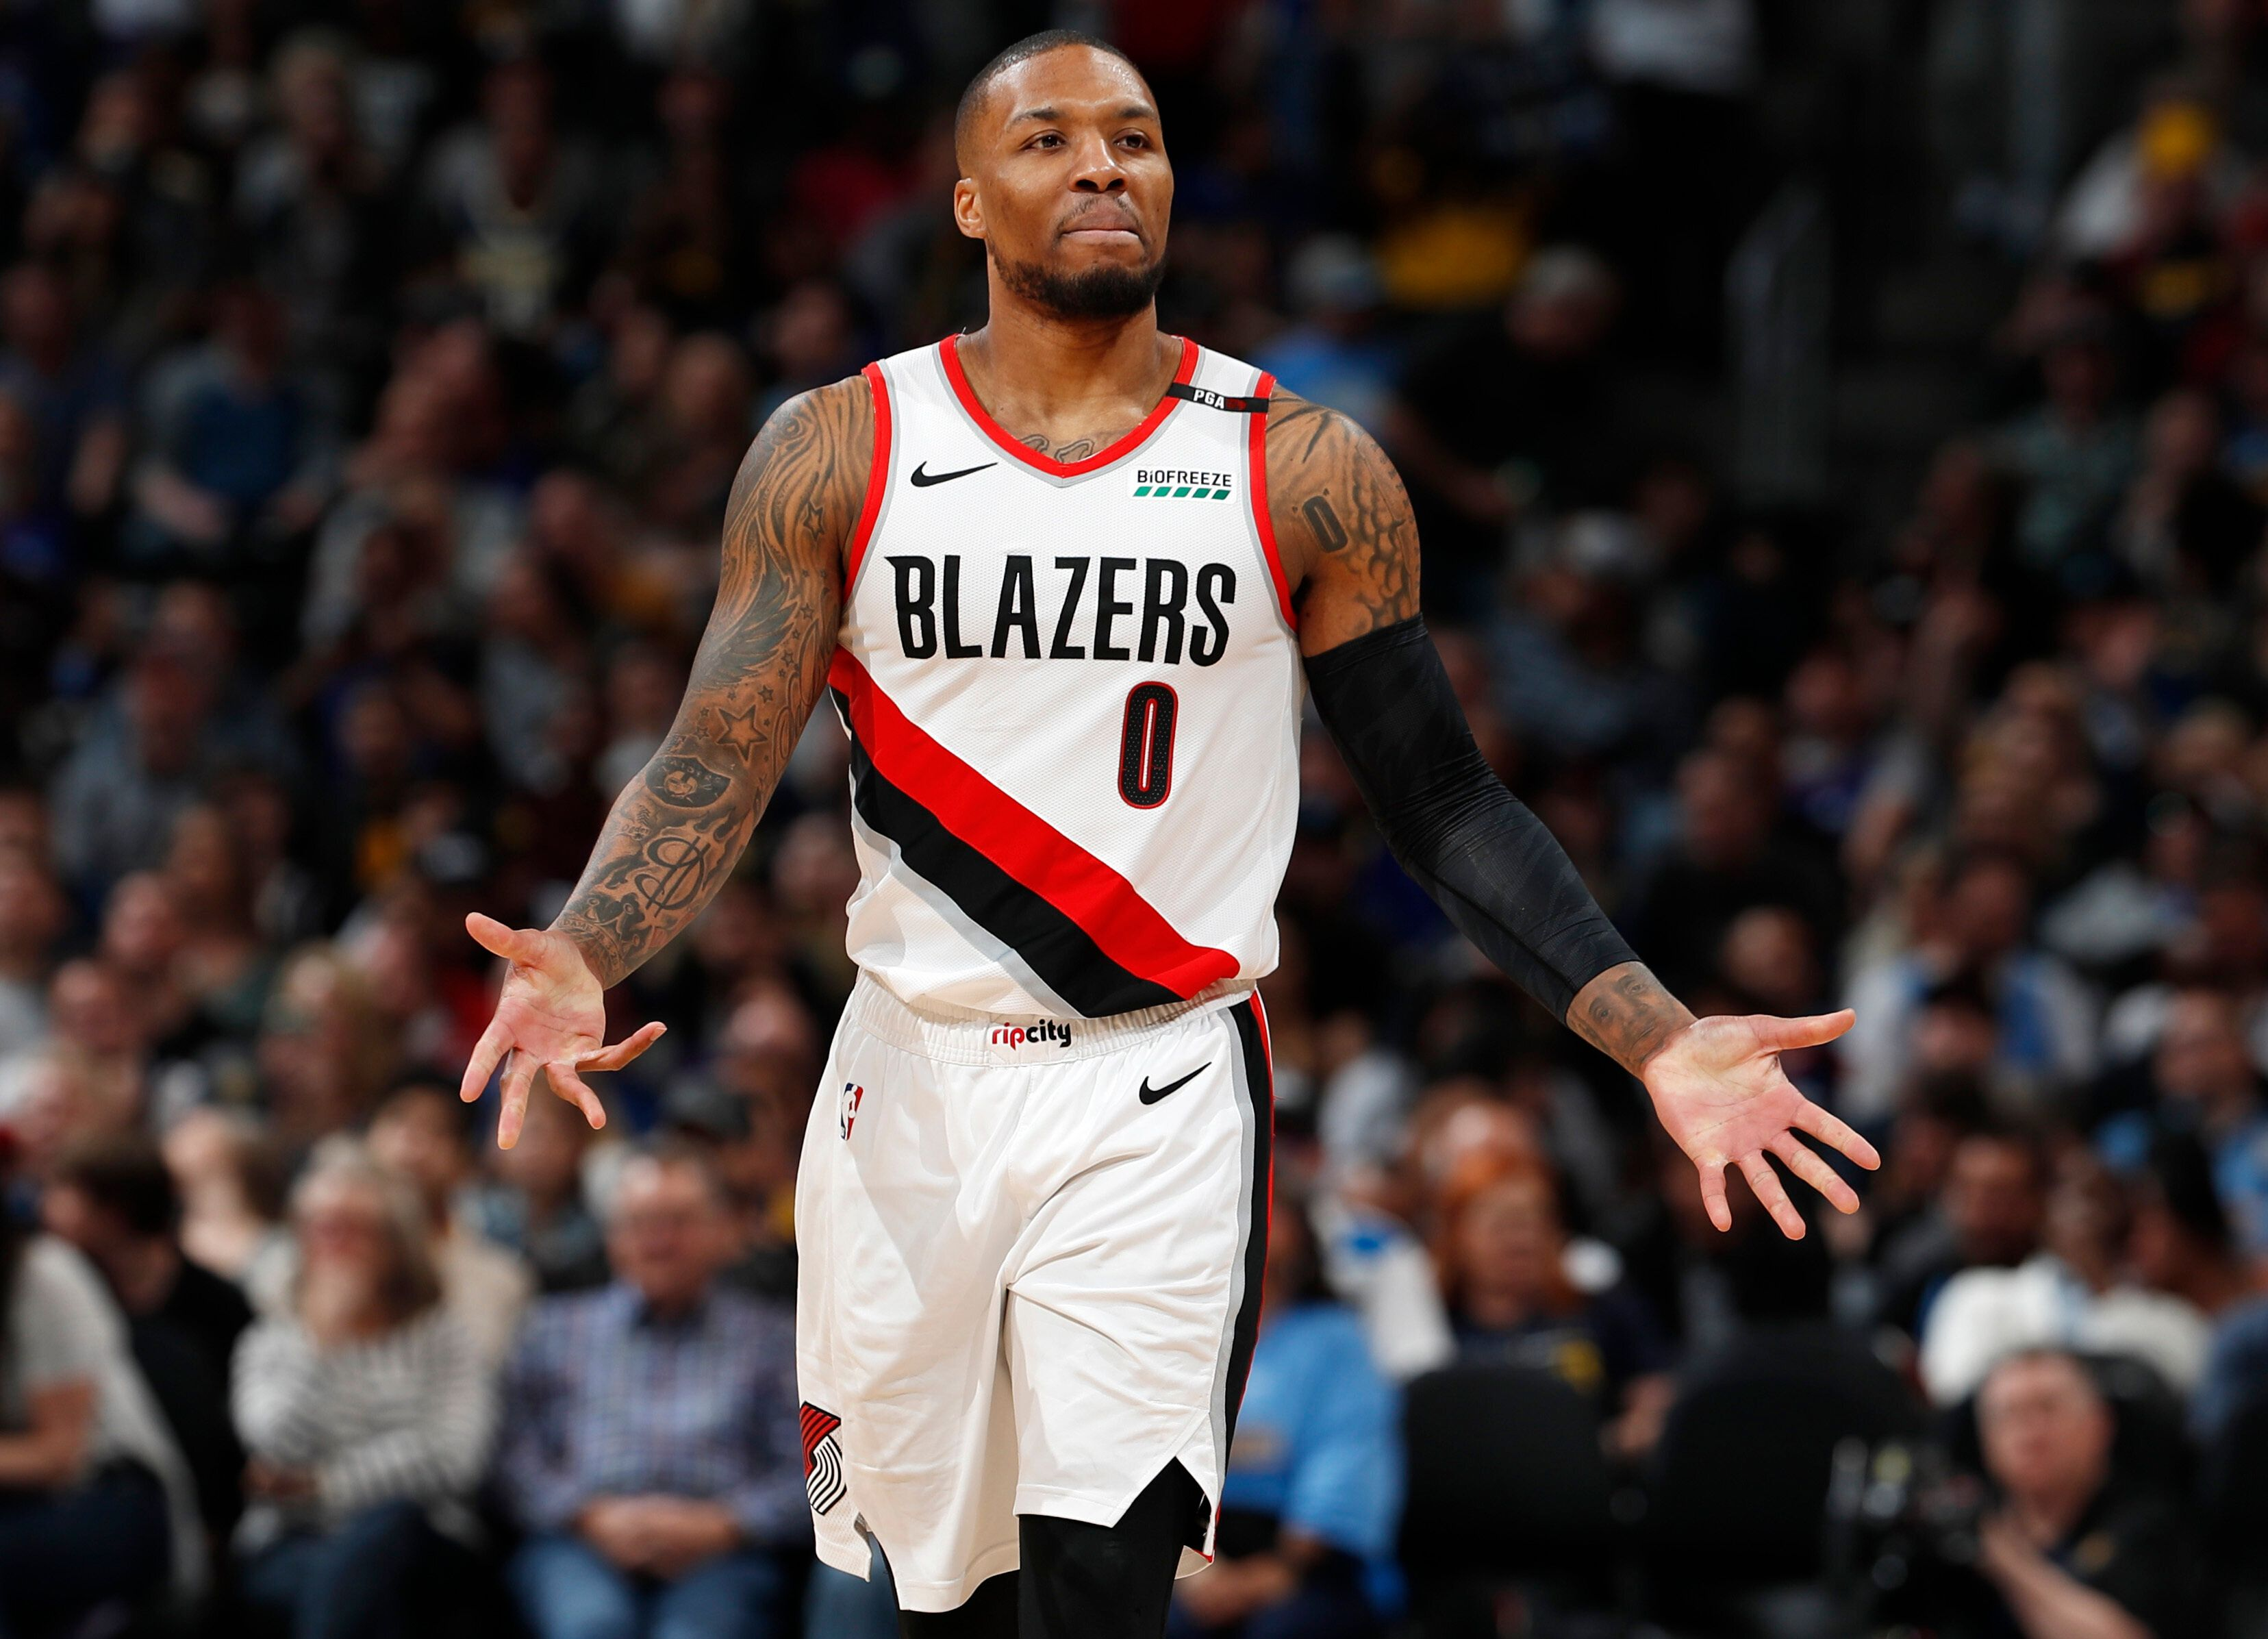 Portland Trail Blazers guard Damian Lillard reacts after being called for a foul against the Denver Nuggets during the second half of an NBA basketball game Friday, April 5, 2019, in Denver. The Nuggets won 119-110. (AP Photo/David Zalubowski)